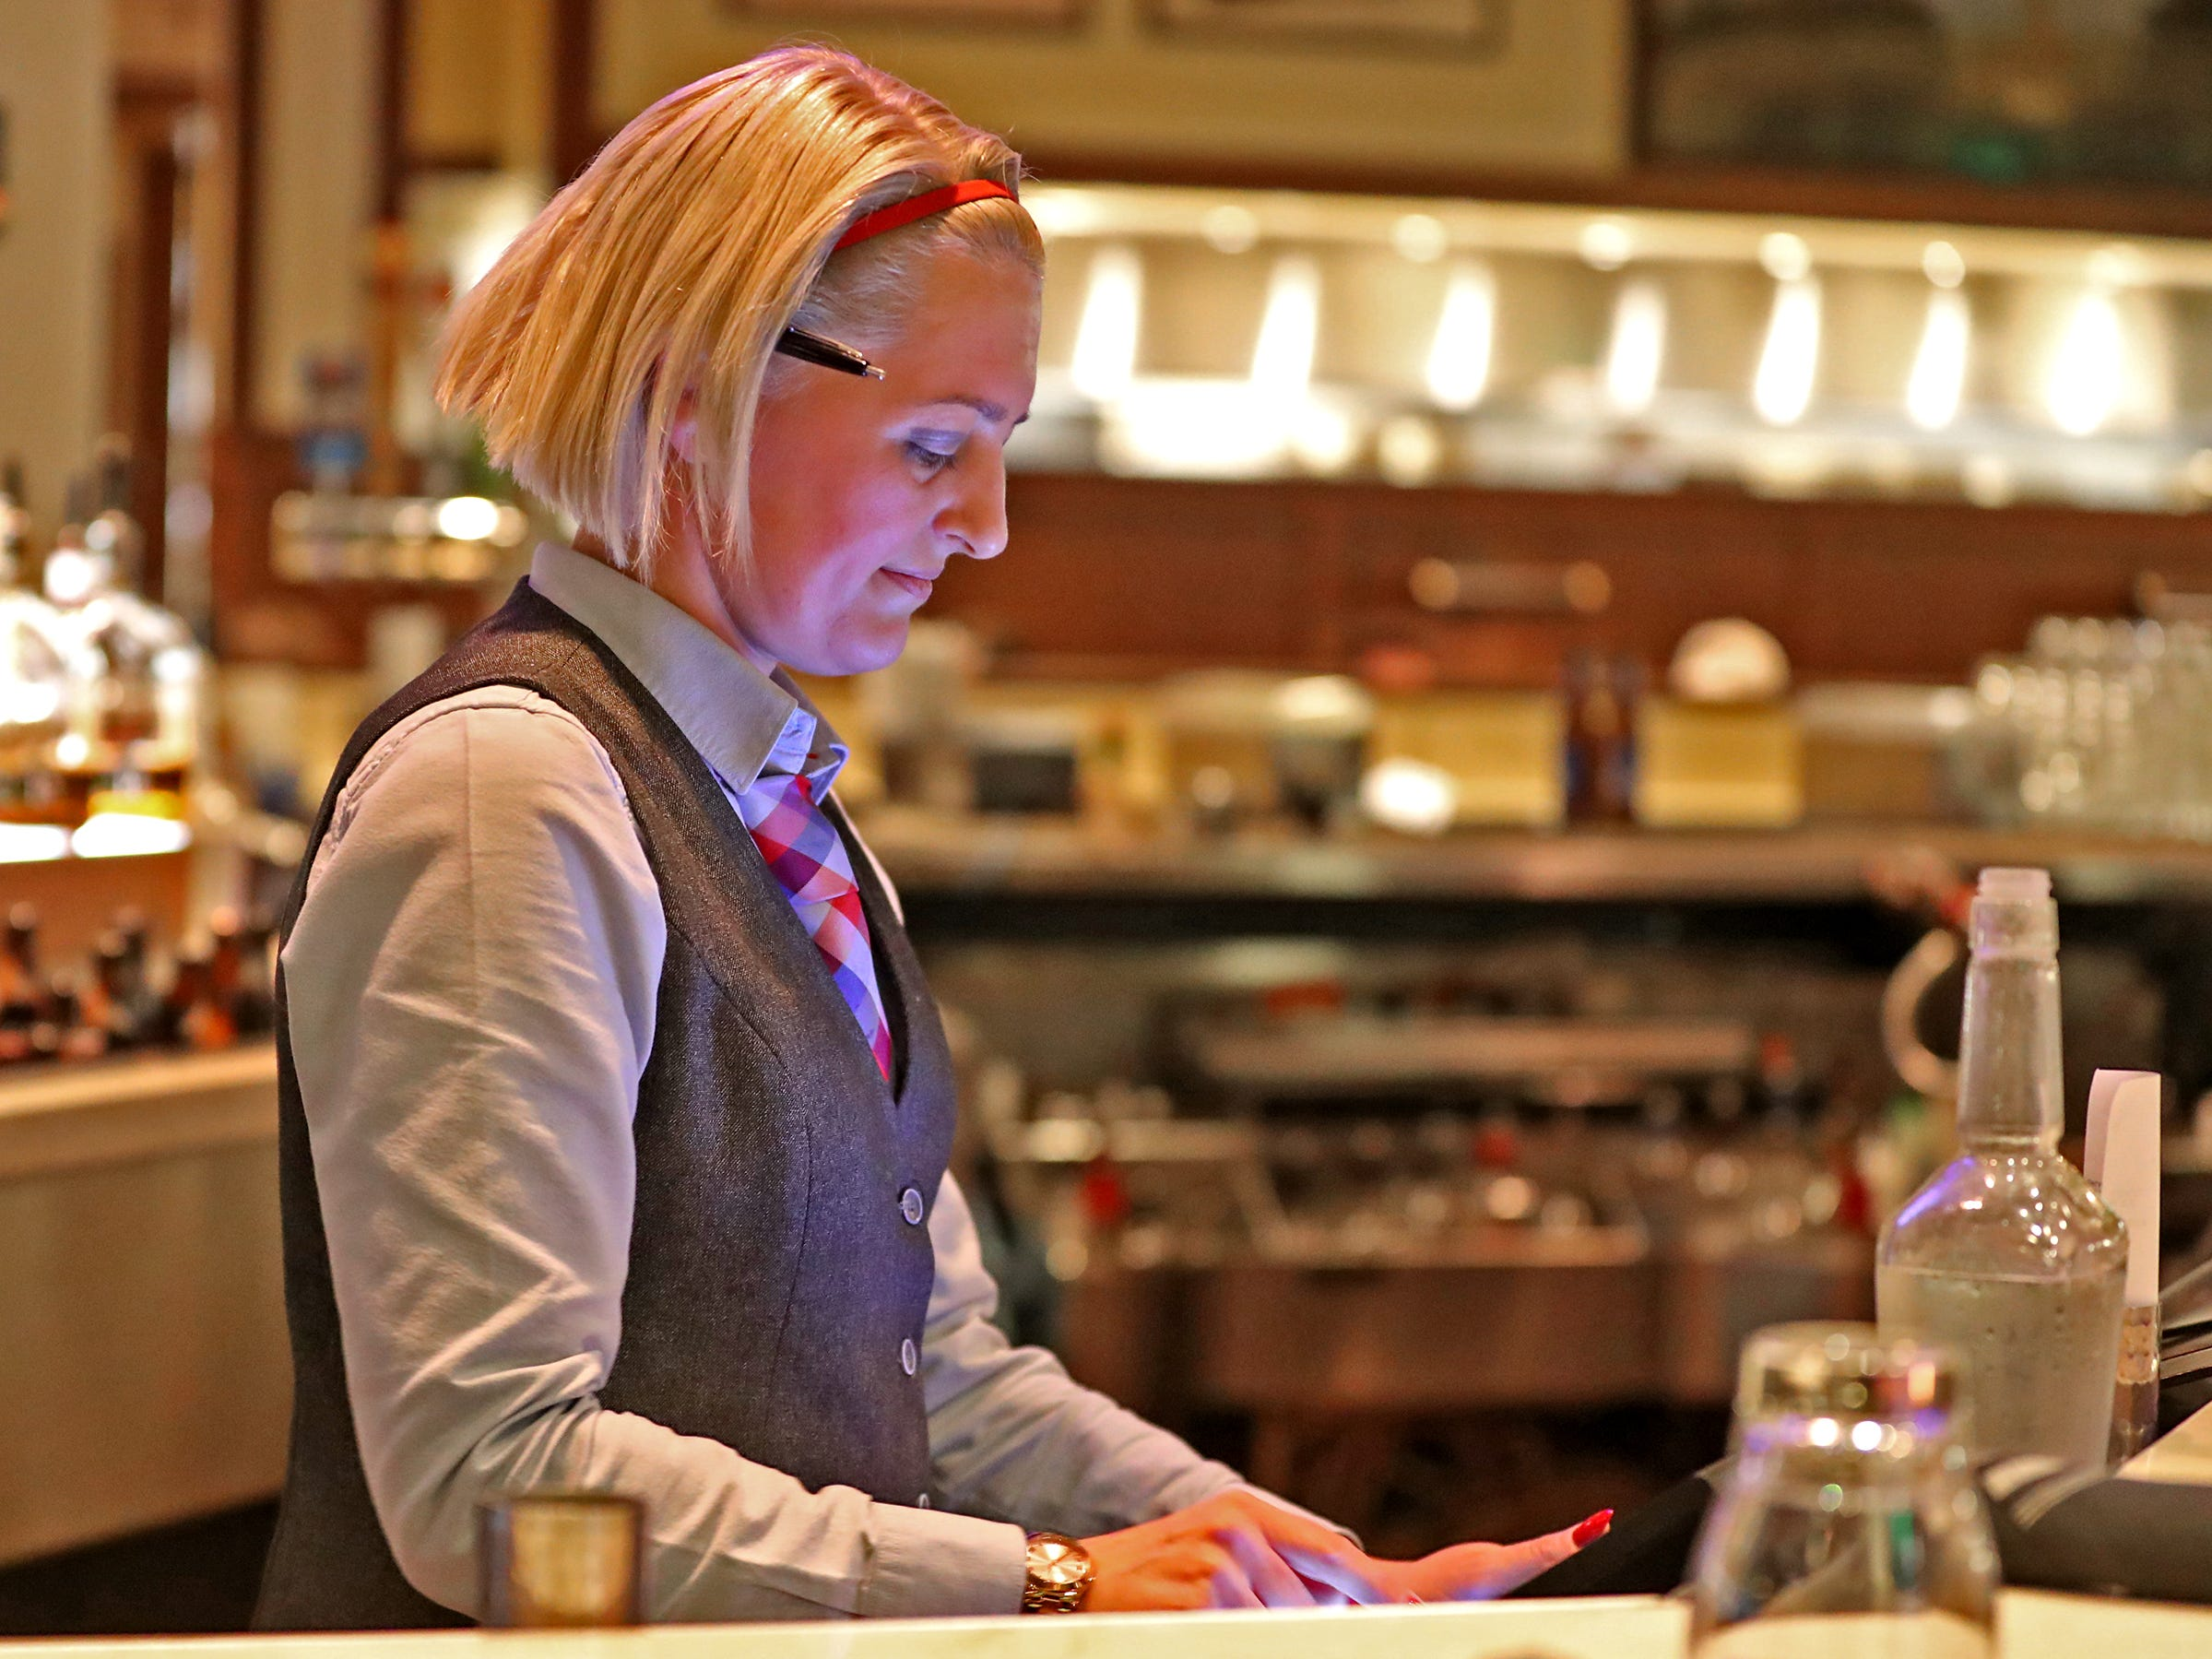 Roxanne Green tallies up a bill while working at Burger Study, Thursday, March 14, 2019.  The restaurant uses Snapshyft to help supplement their staffing during peak times.